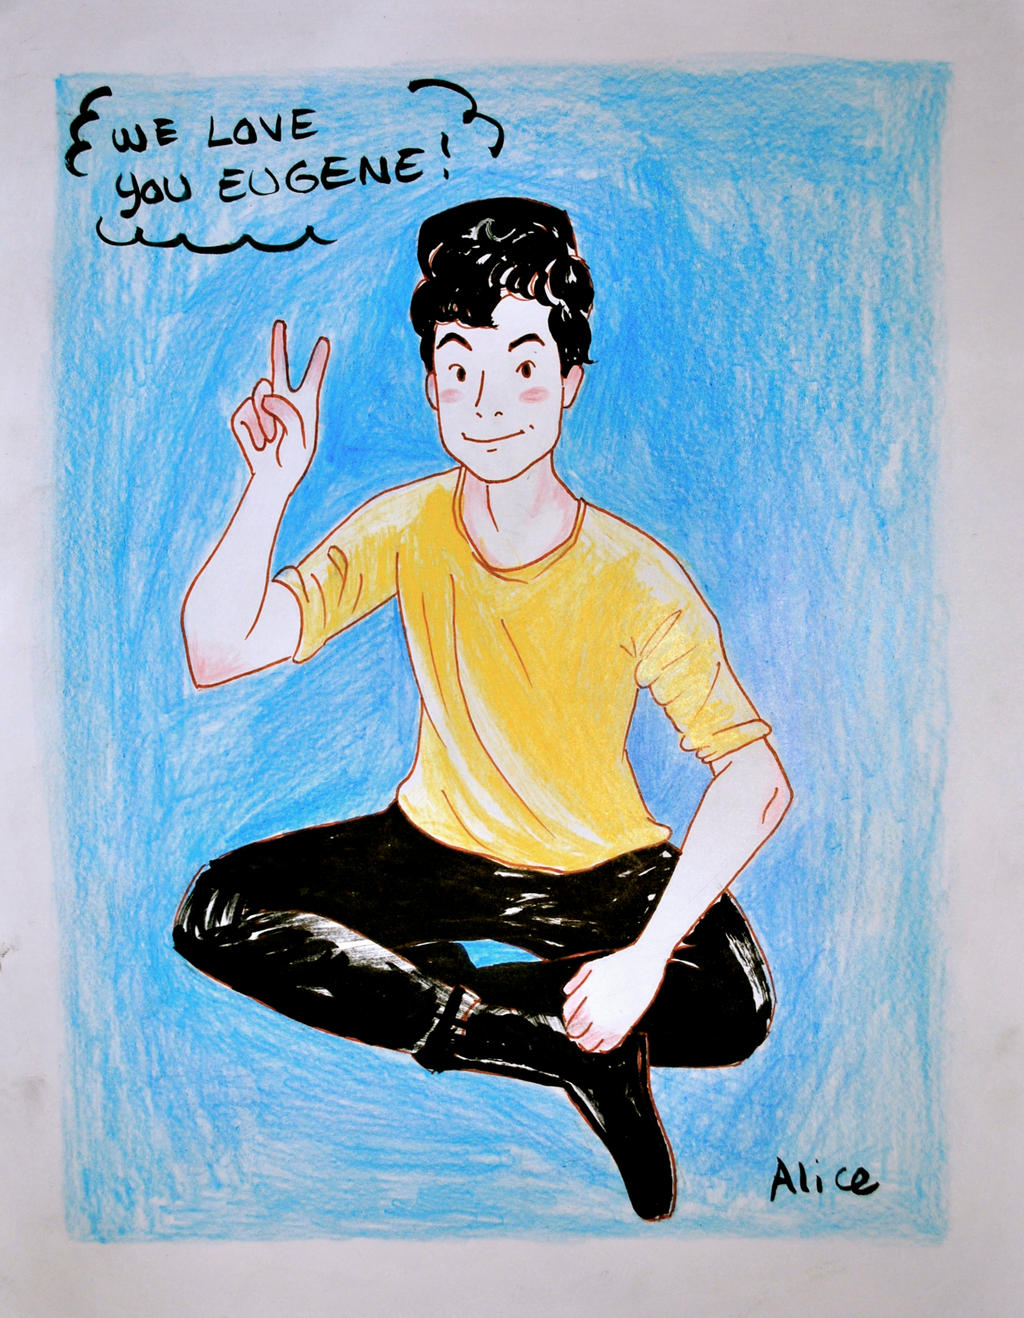 For Eugene Lee Yang from Buzzfeed by AdvAnCed fort on DeviantArt